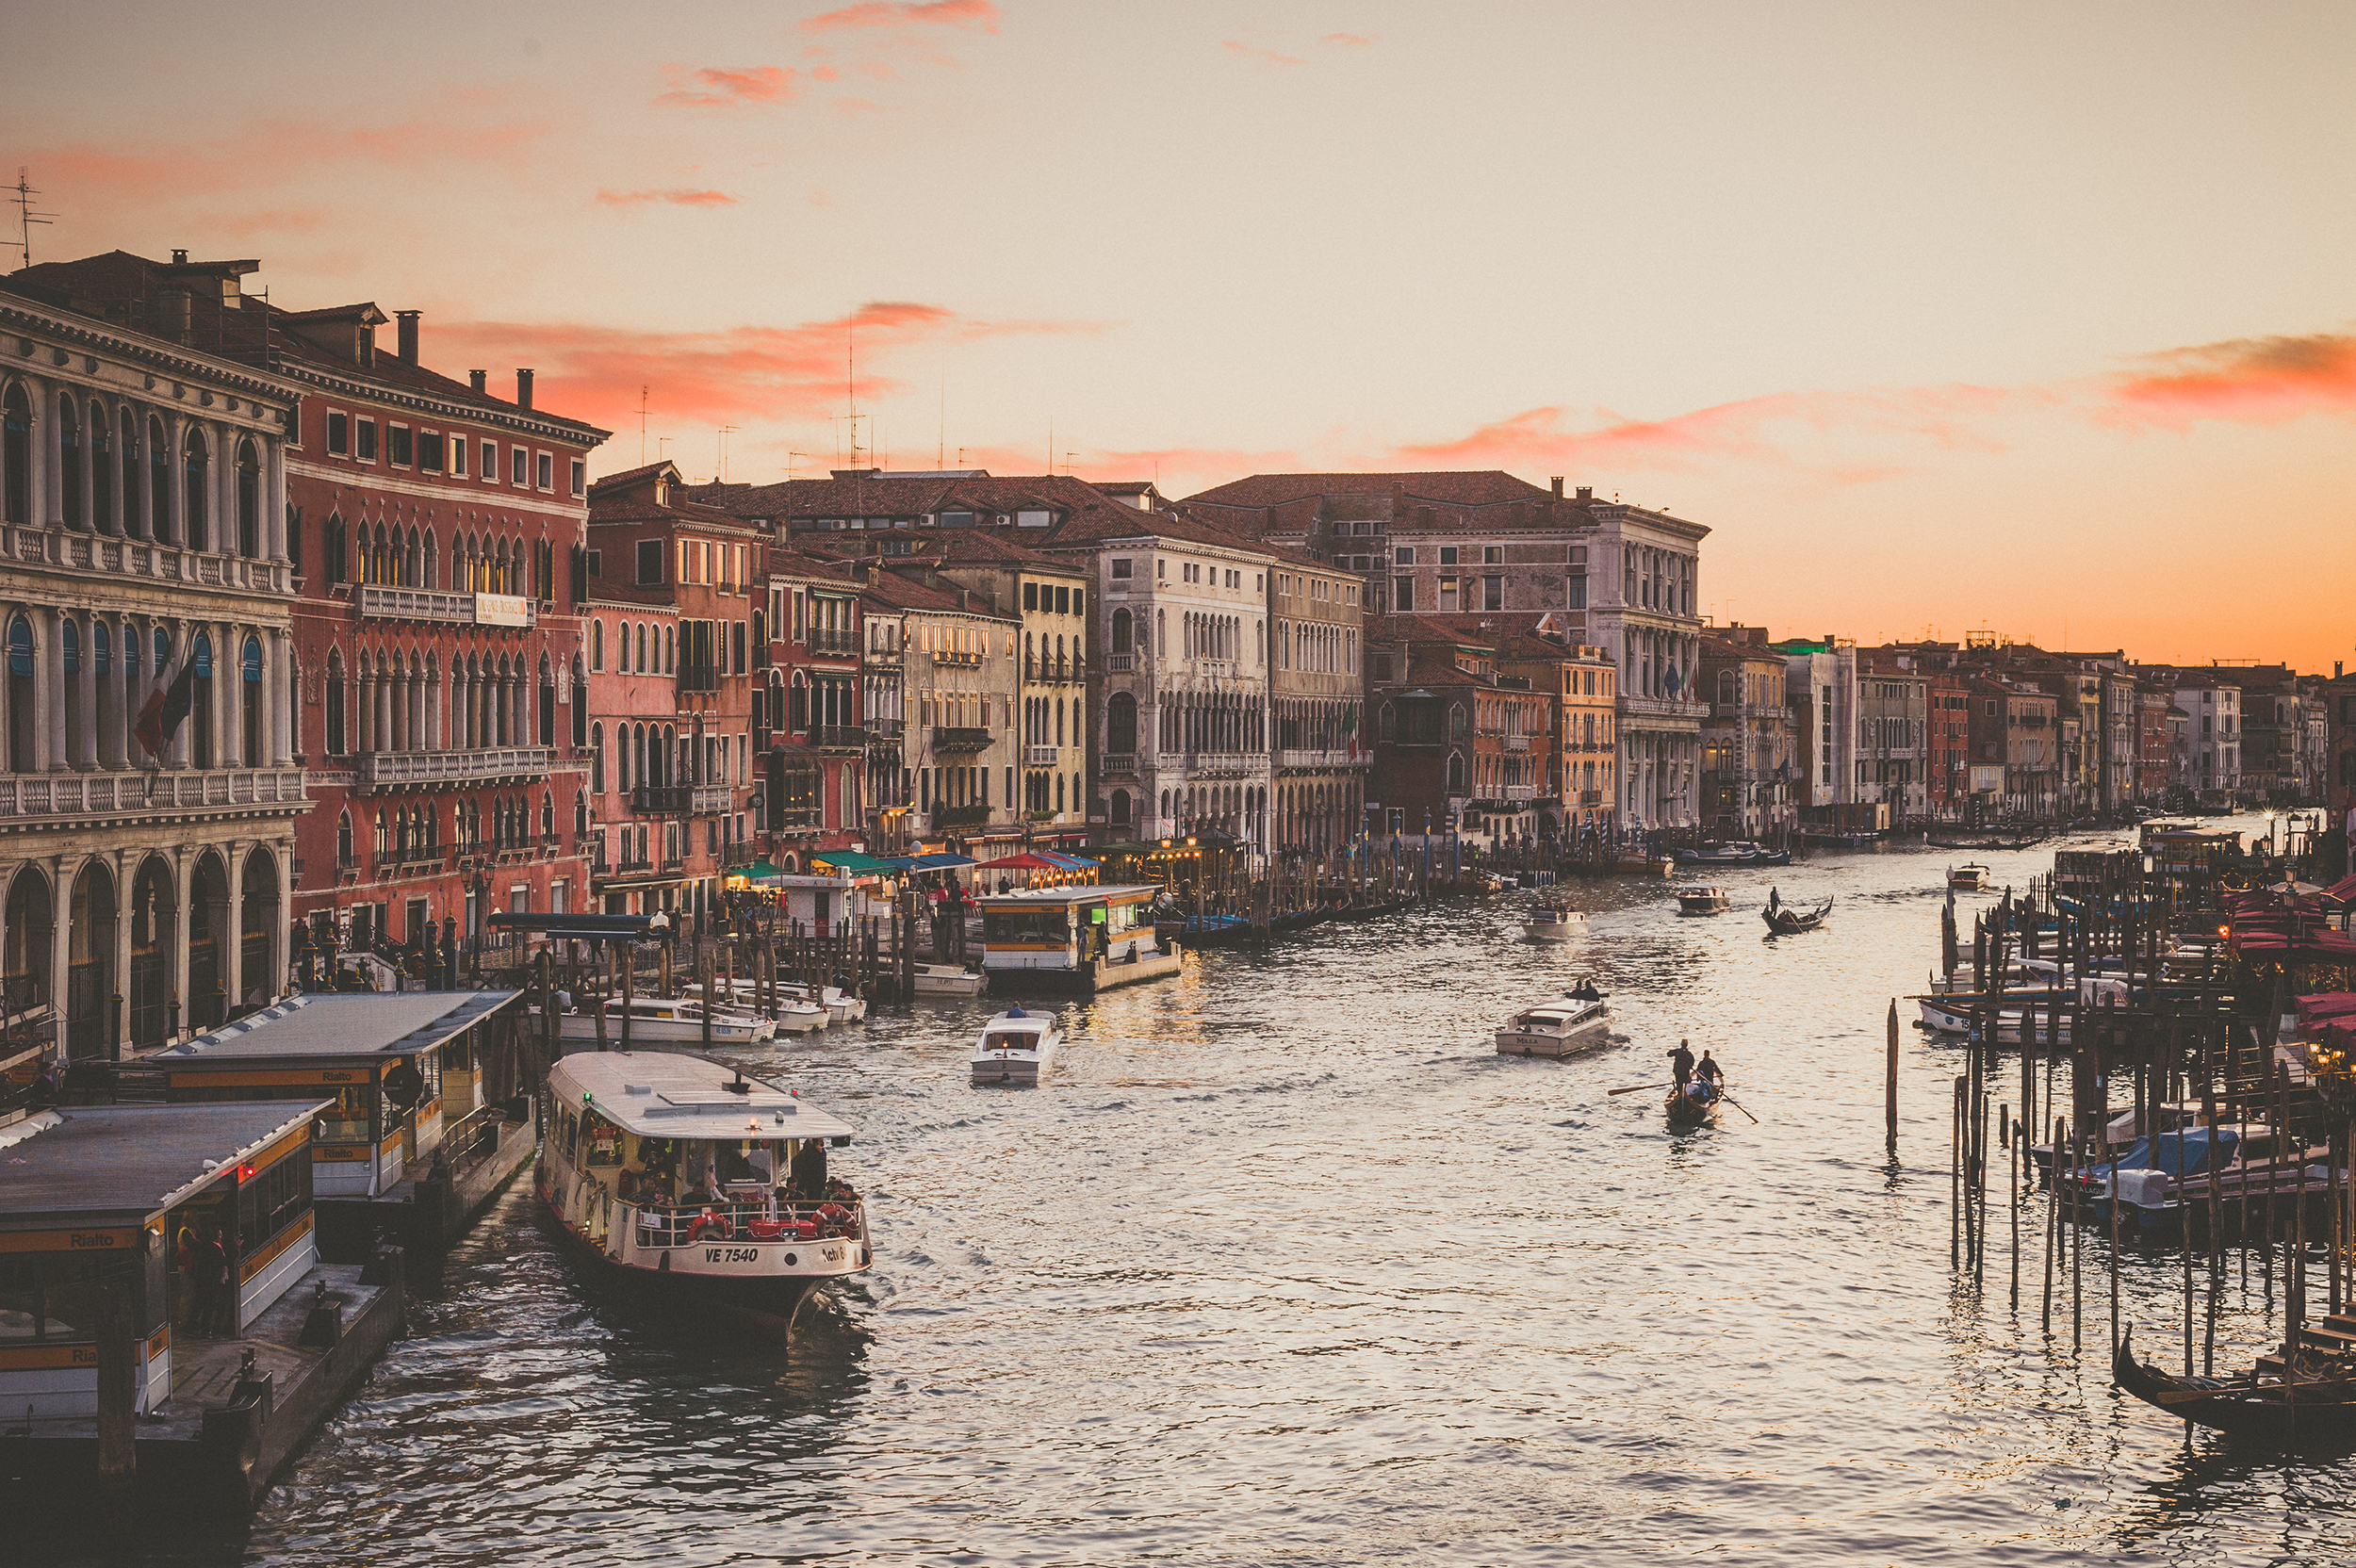 KC_Lifestyle_Photographer_OutdoorPhotography_Adventure_Photography_Venice_Italy35.jpg